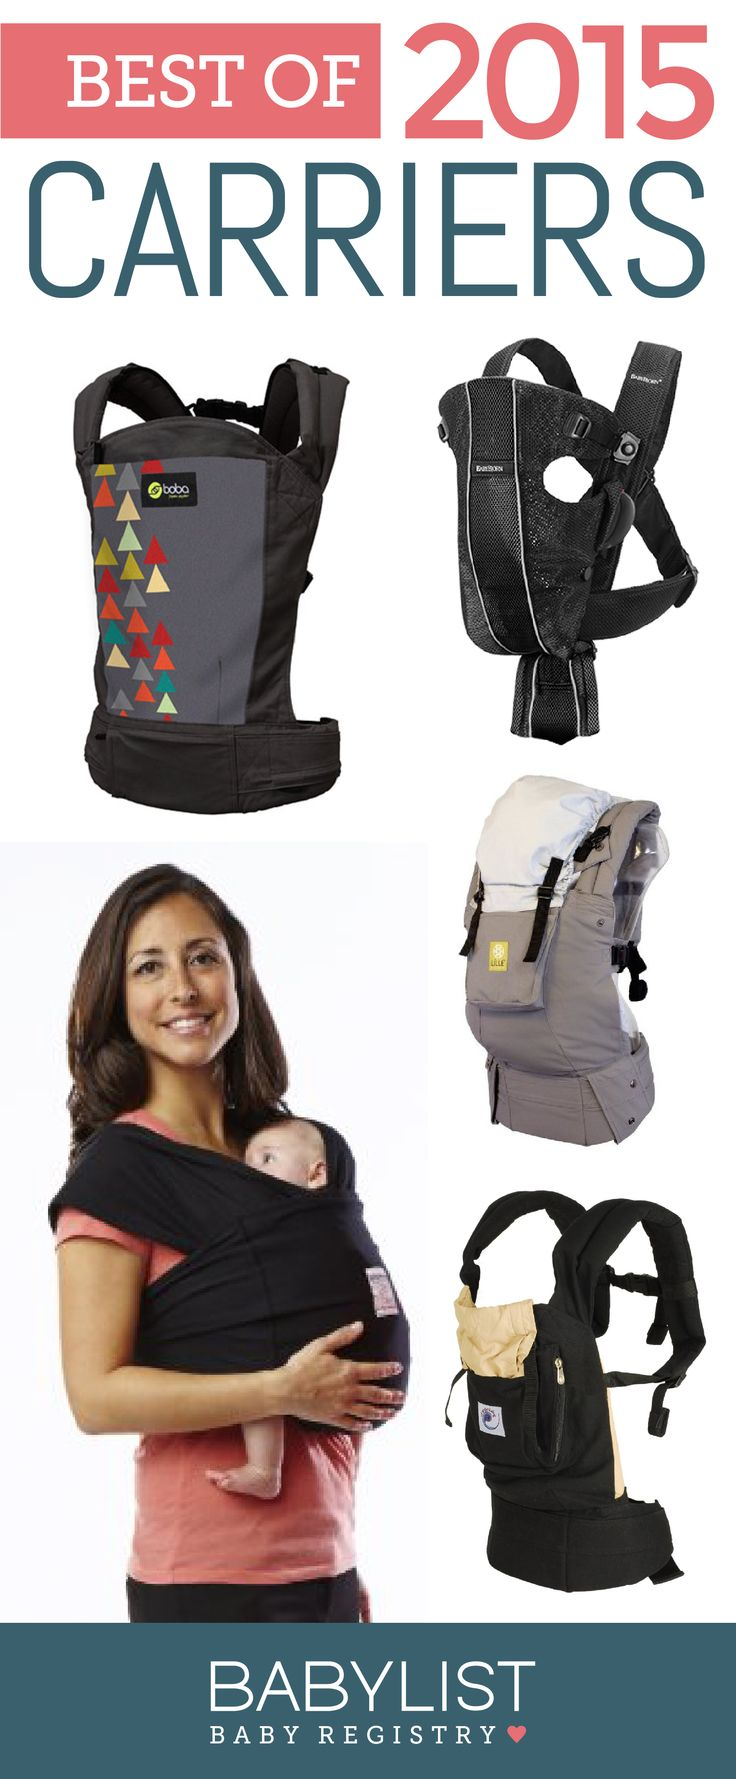 Need a some advice to help you pick the best baby carrier? Here are the 5 best carriers of 2015 - based on our own research + input from thousands of parents. There is no one best baby carrier. Every family is different. Use this guide to help you figure out the best carrier for your family's needs and priorities.